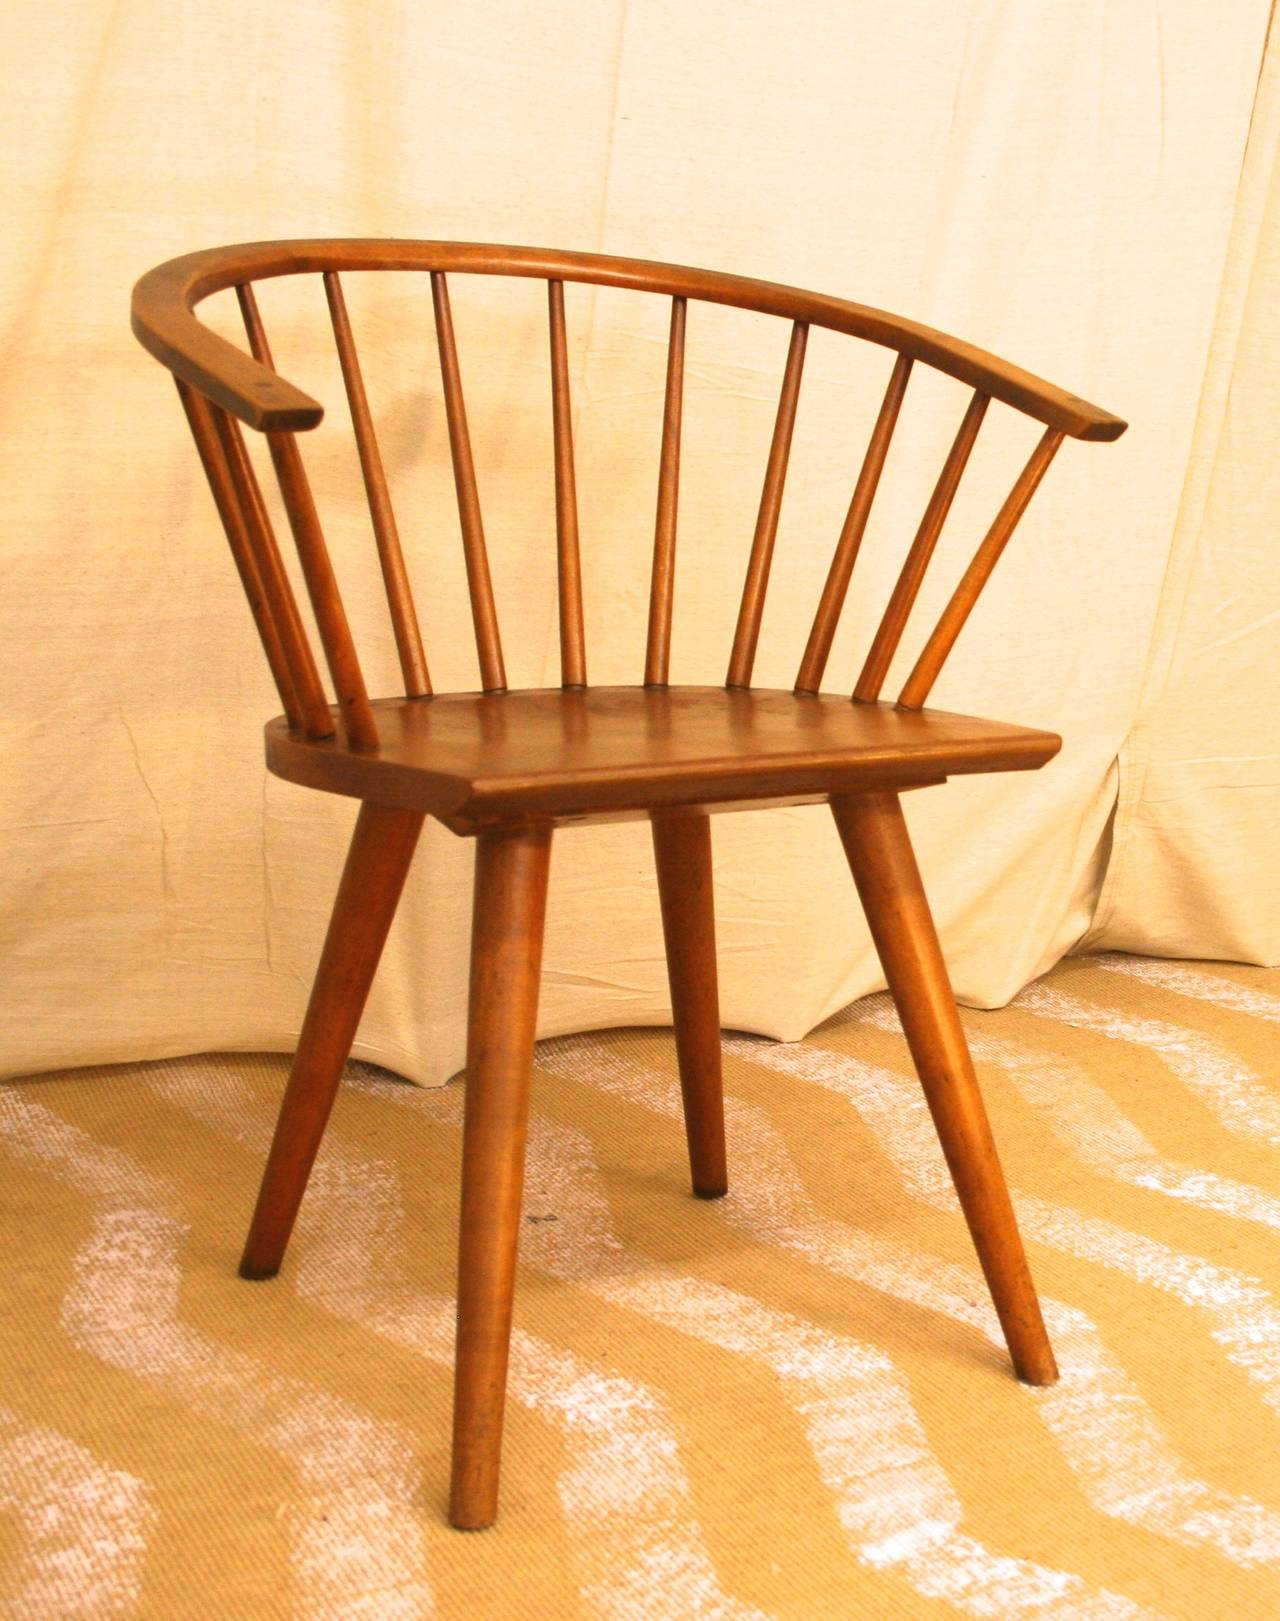 Pair of Conant Ball Maple Dining Chairs circa 1950s at 1stdibs